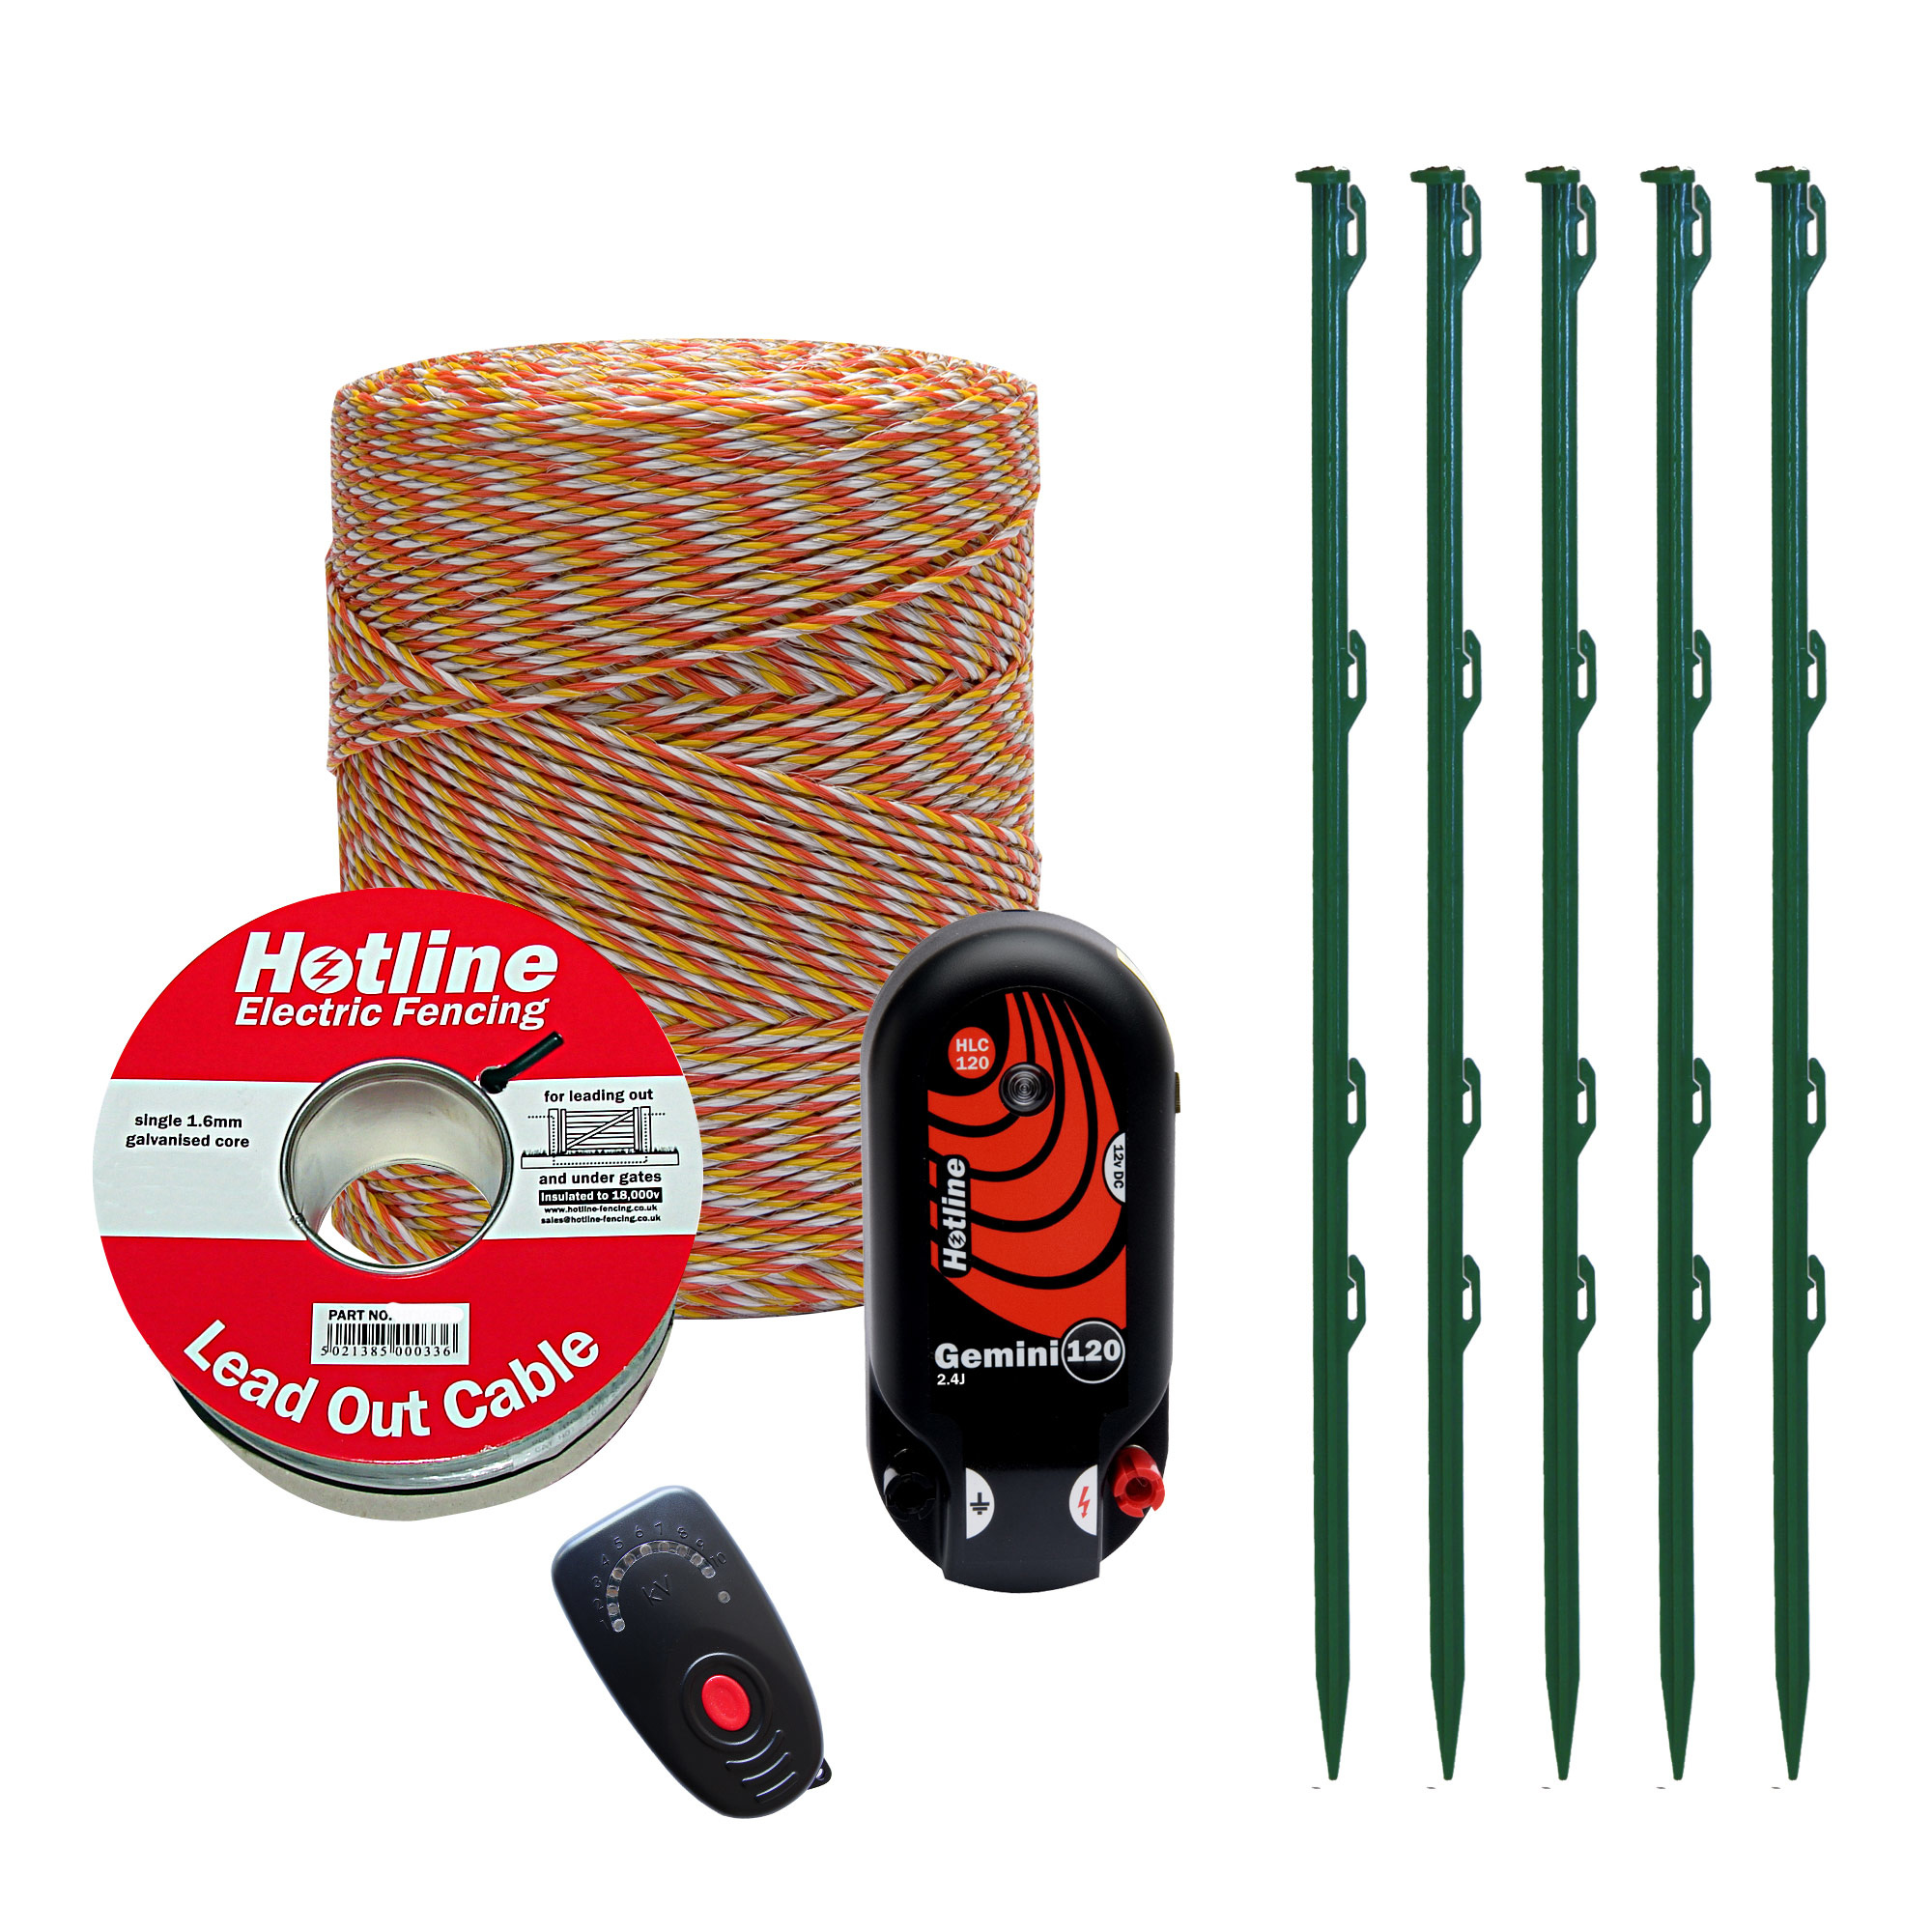 Hotline Mains Or Battery Powered Electric Fencing Kit For